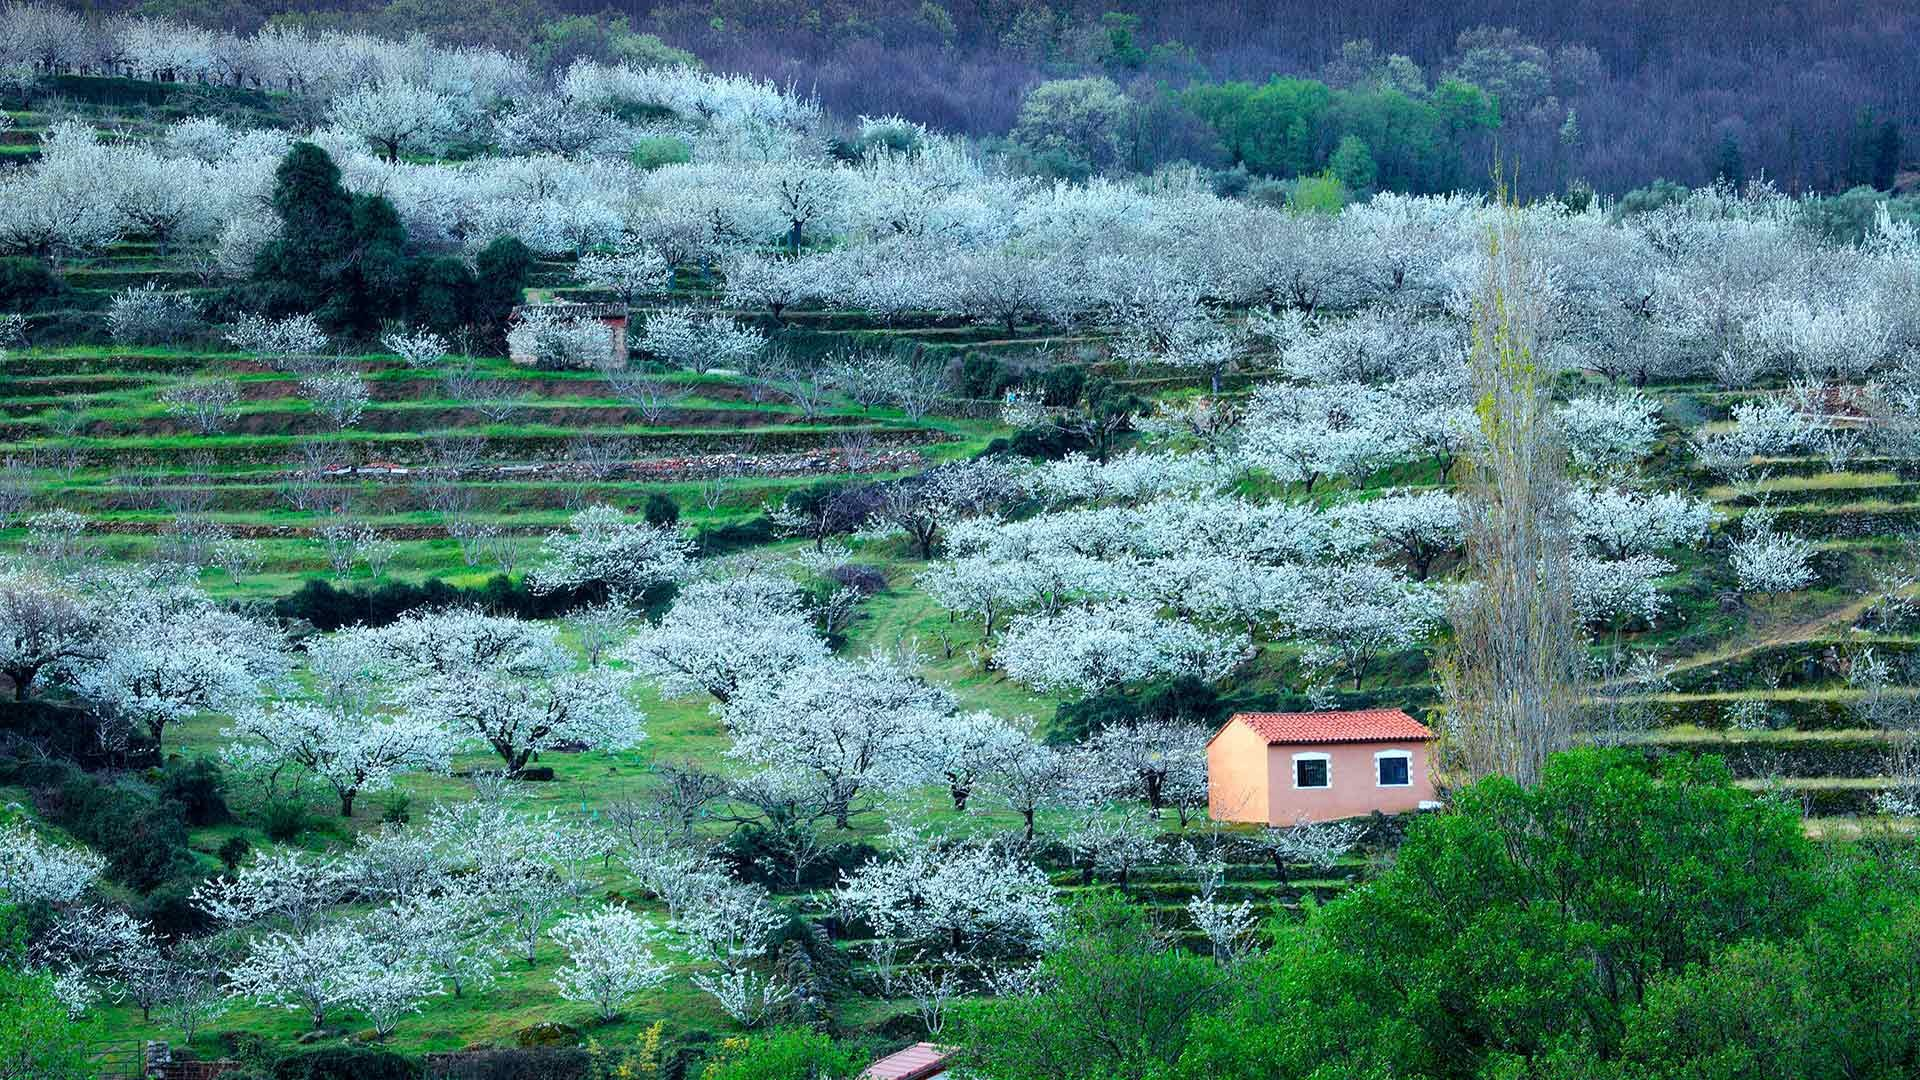 Jerte Valley Spain, with cherry blossoms in bloom.jpg